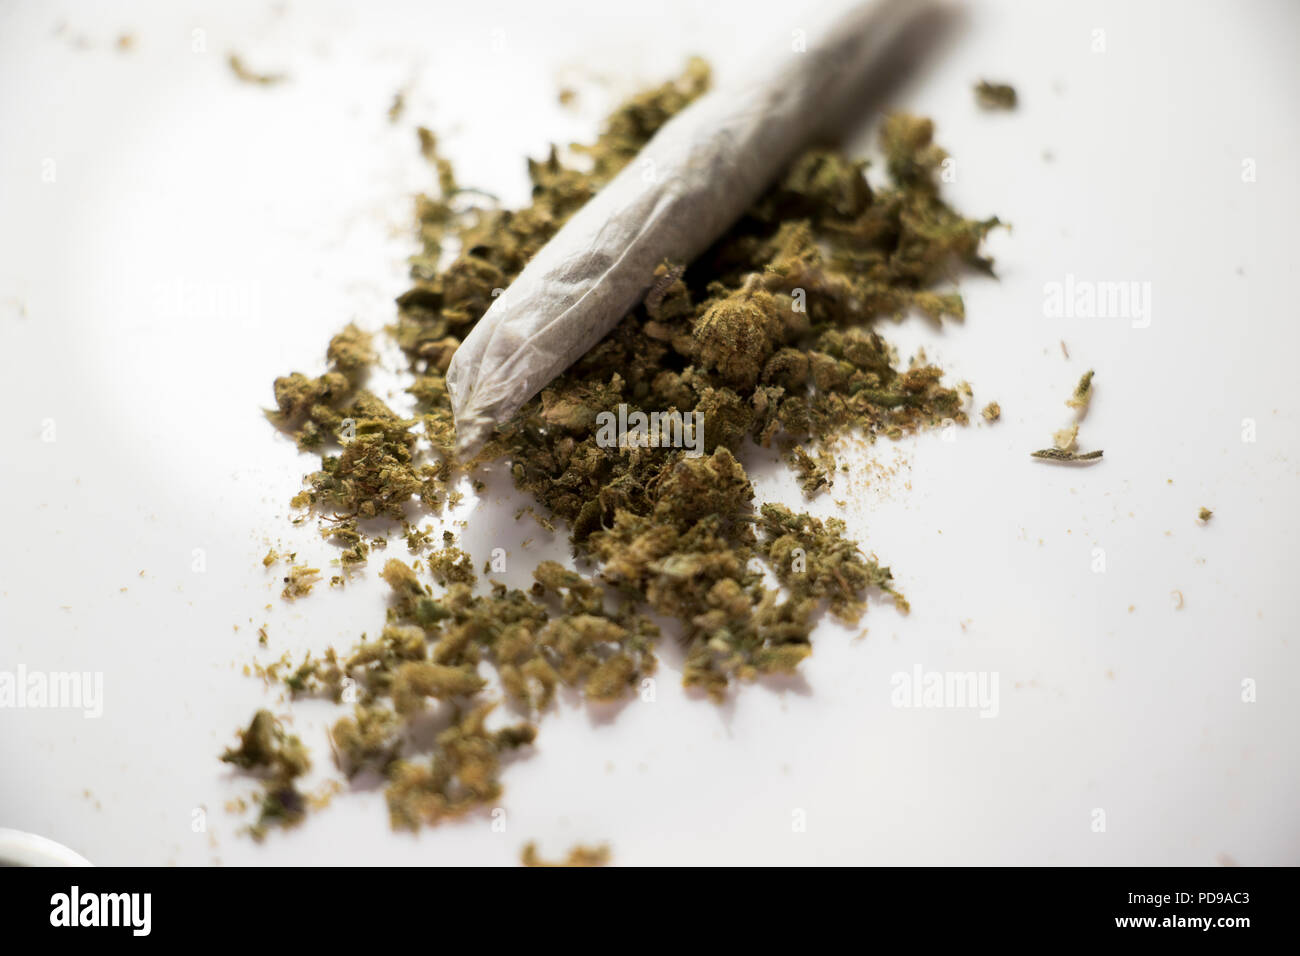 Rolled joint of weed. Marijuana used for cancer treatment. - Stock Image